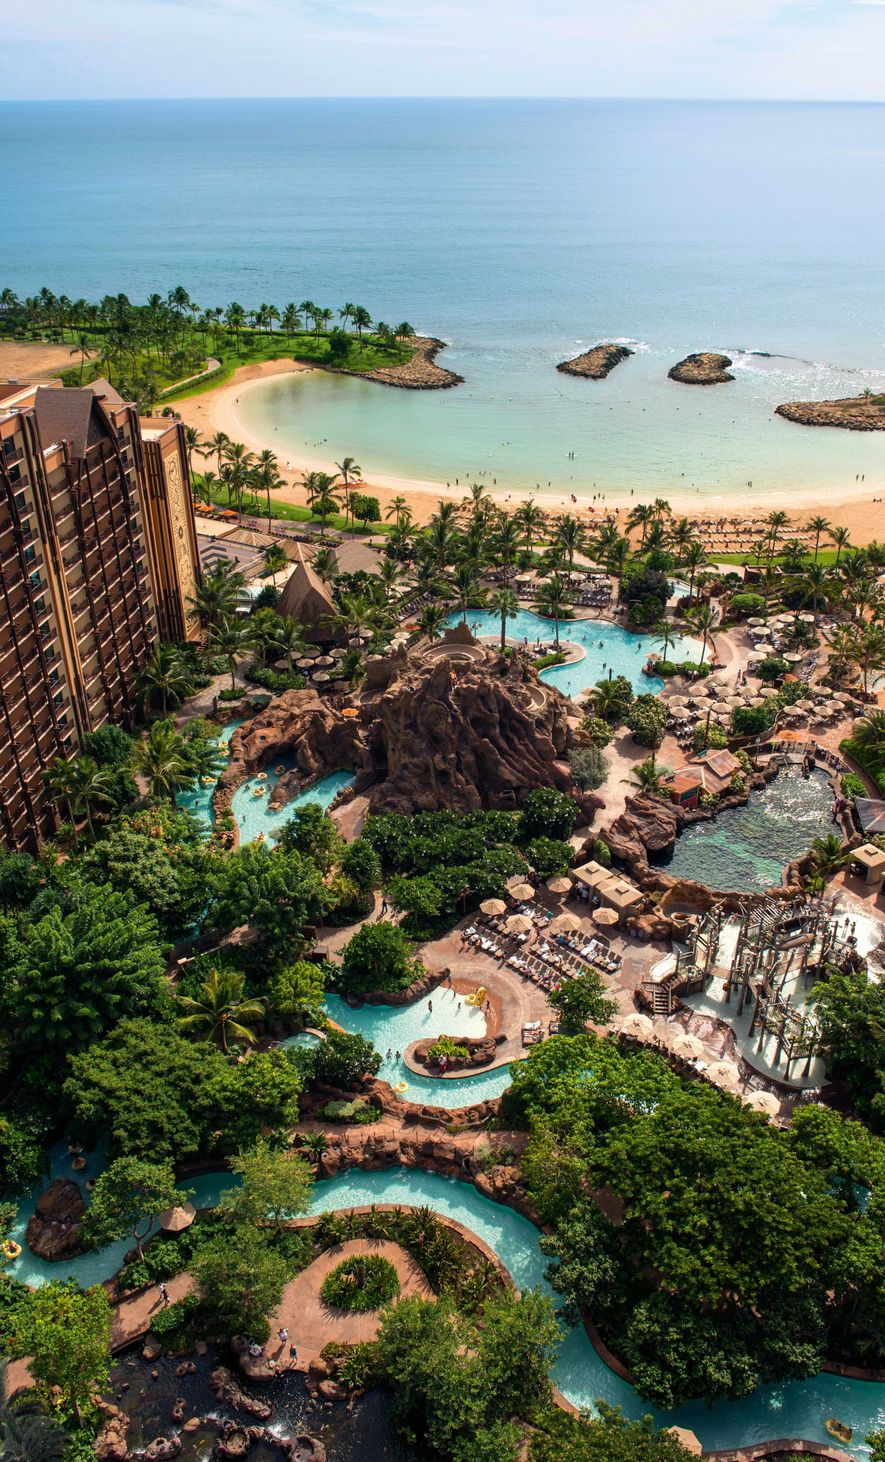 Disney Aulani is the all-singing, all-dancing resort in Ko Olina, ideal for families.